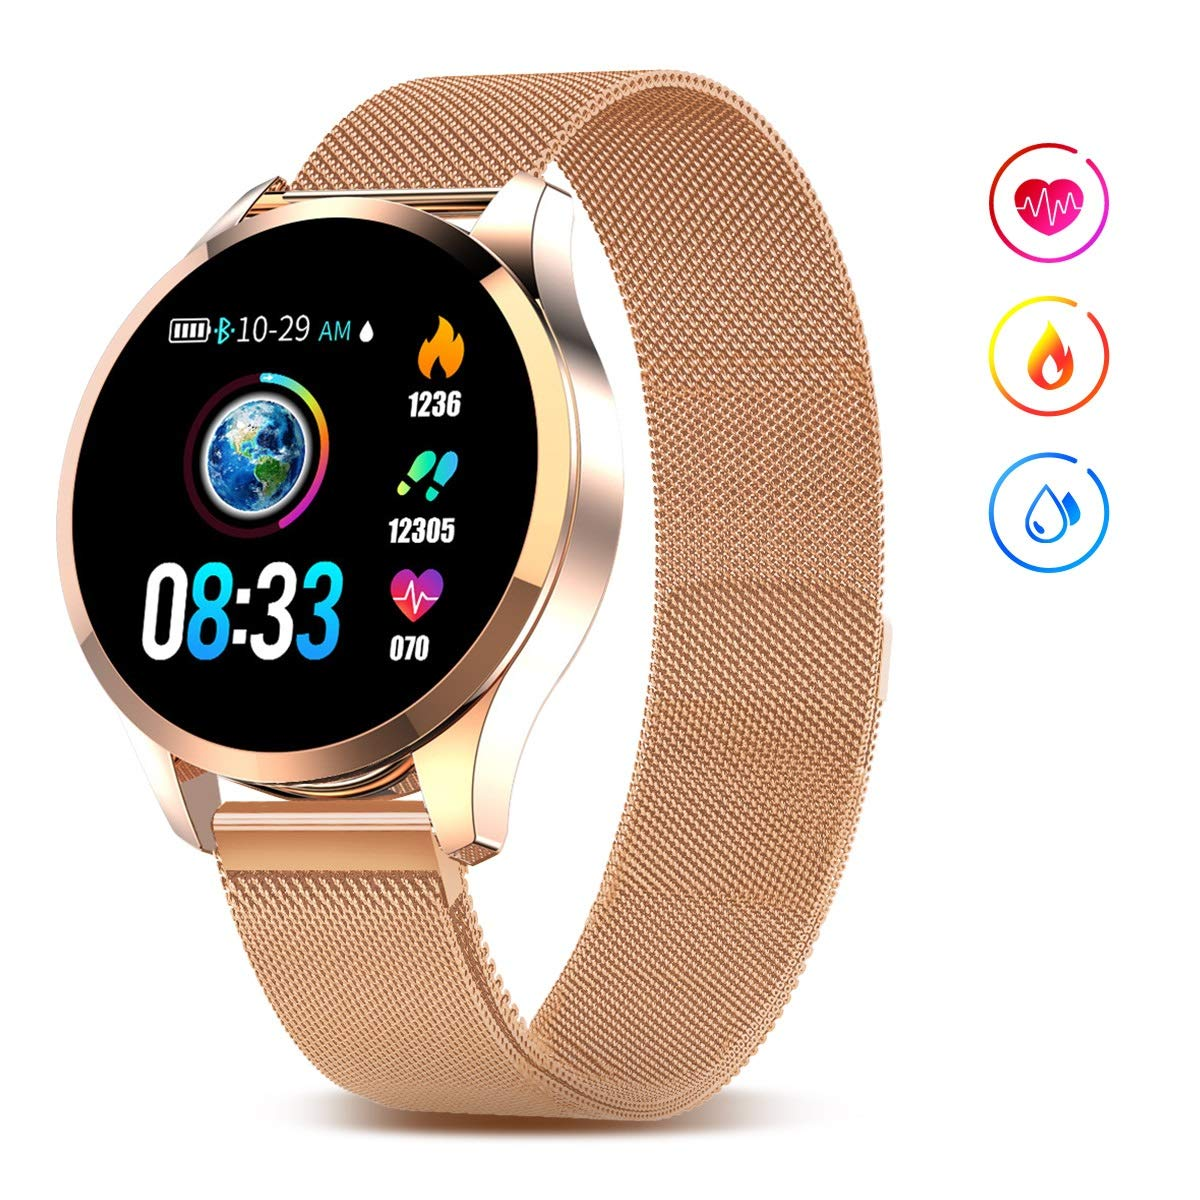 GOKOO Smart Watch for Men Women with All-Day Heart Rate Blood Pressure Sleep Monitor IP67 Waterproof Activity Tracker Calorie Running Counter Gold by GOKOO